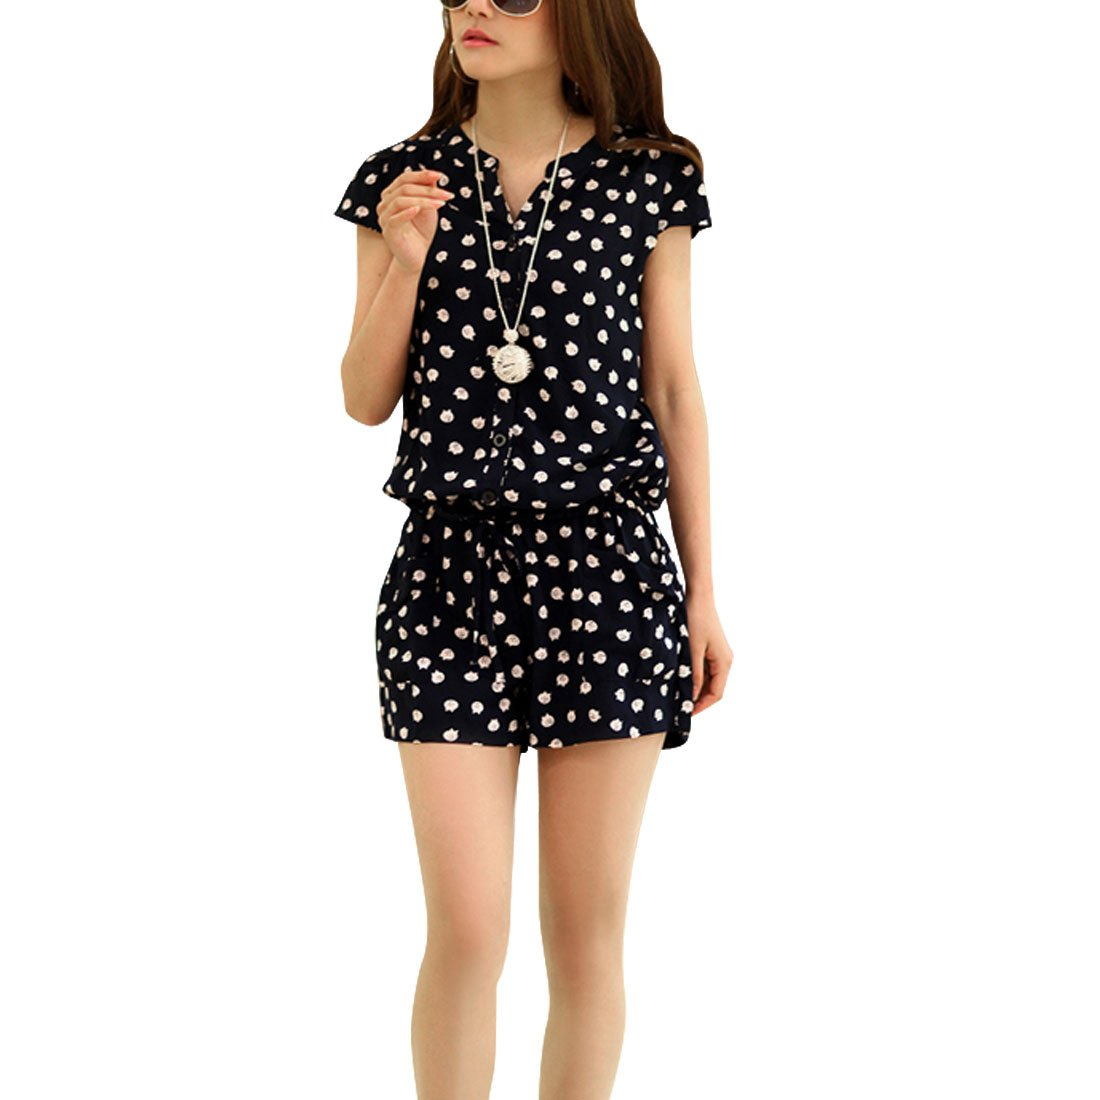 Our adorable women's cheap rompers are fabulous additions to your wardrobe. Our women's cute sexy rompers are a unique alternative to the conventional formal style of dressing.